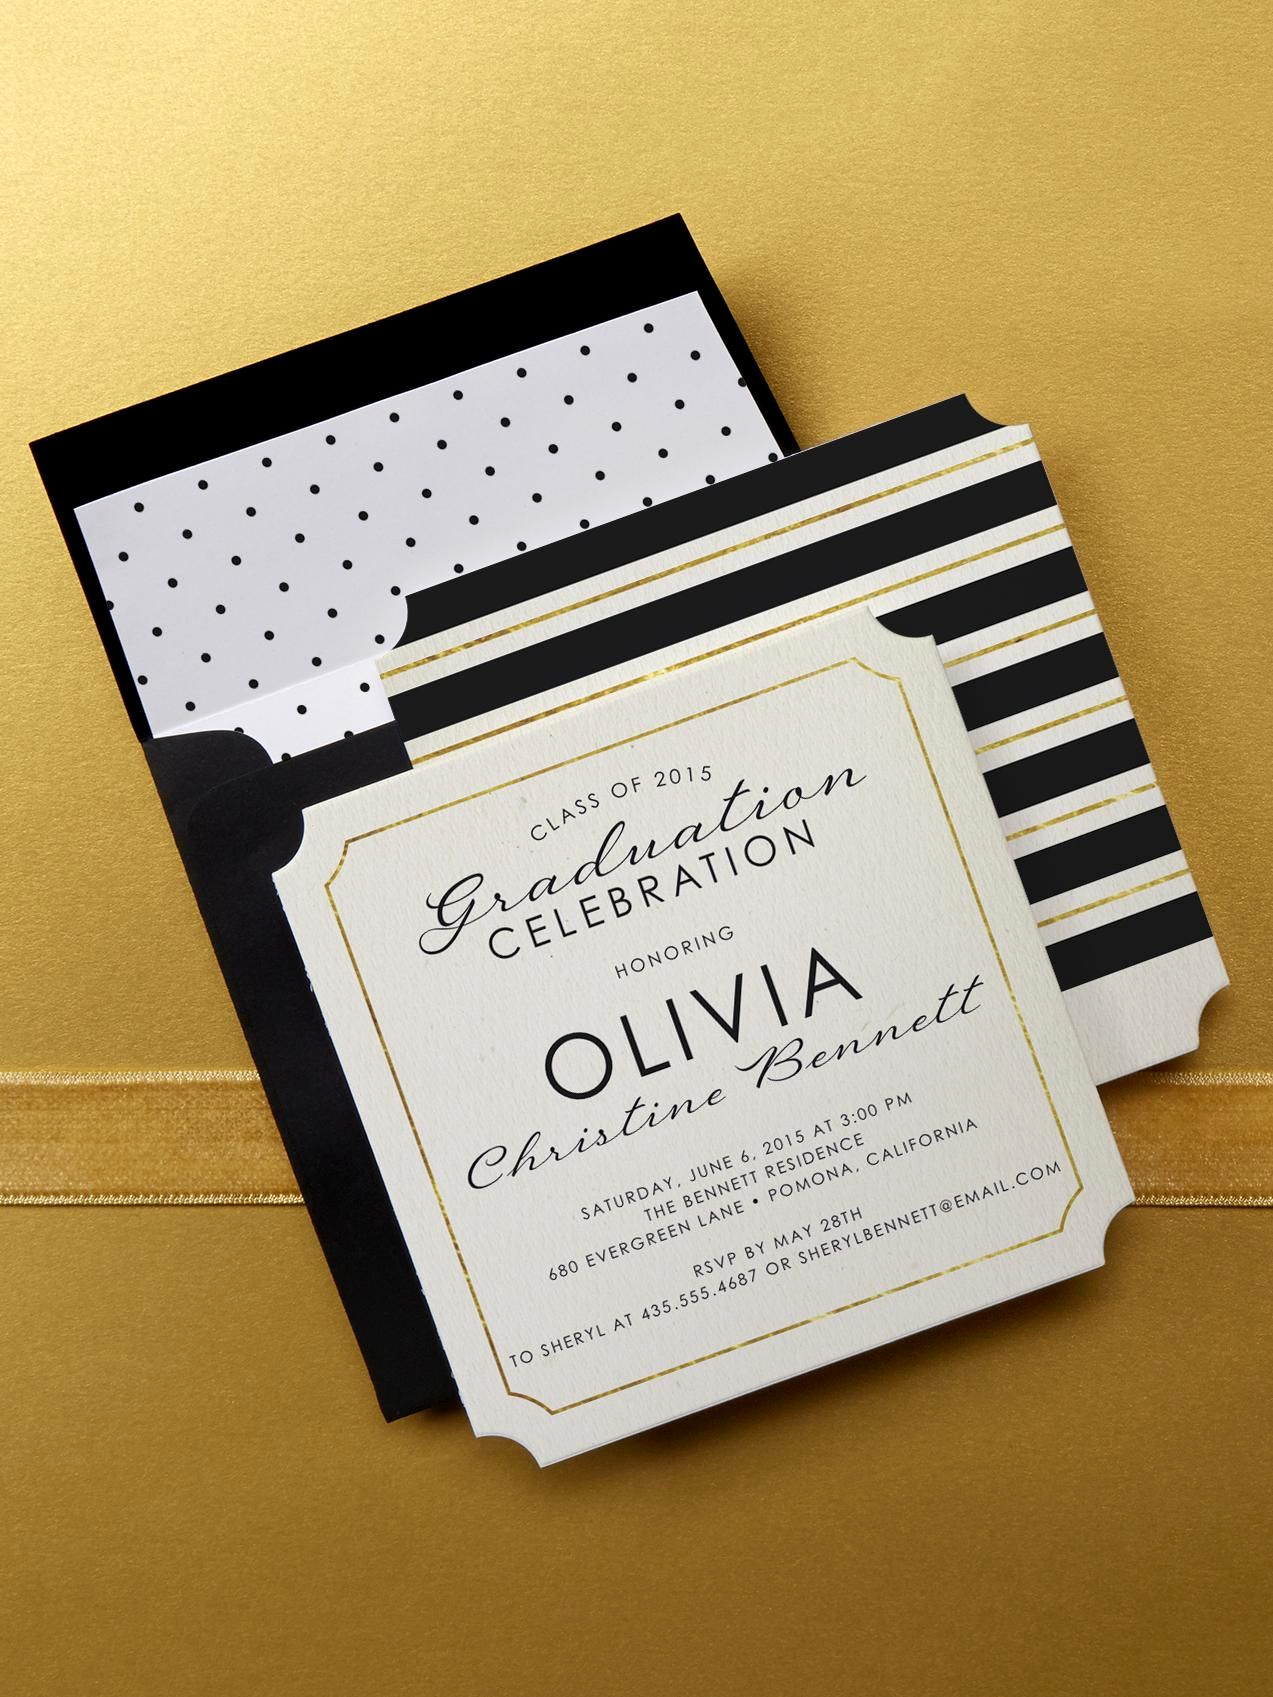 Homemade Graduation Invitation Ideas Awesome Choose A Linen Graduation Invitation Design at Tiny Prints